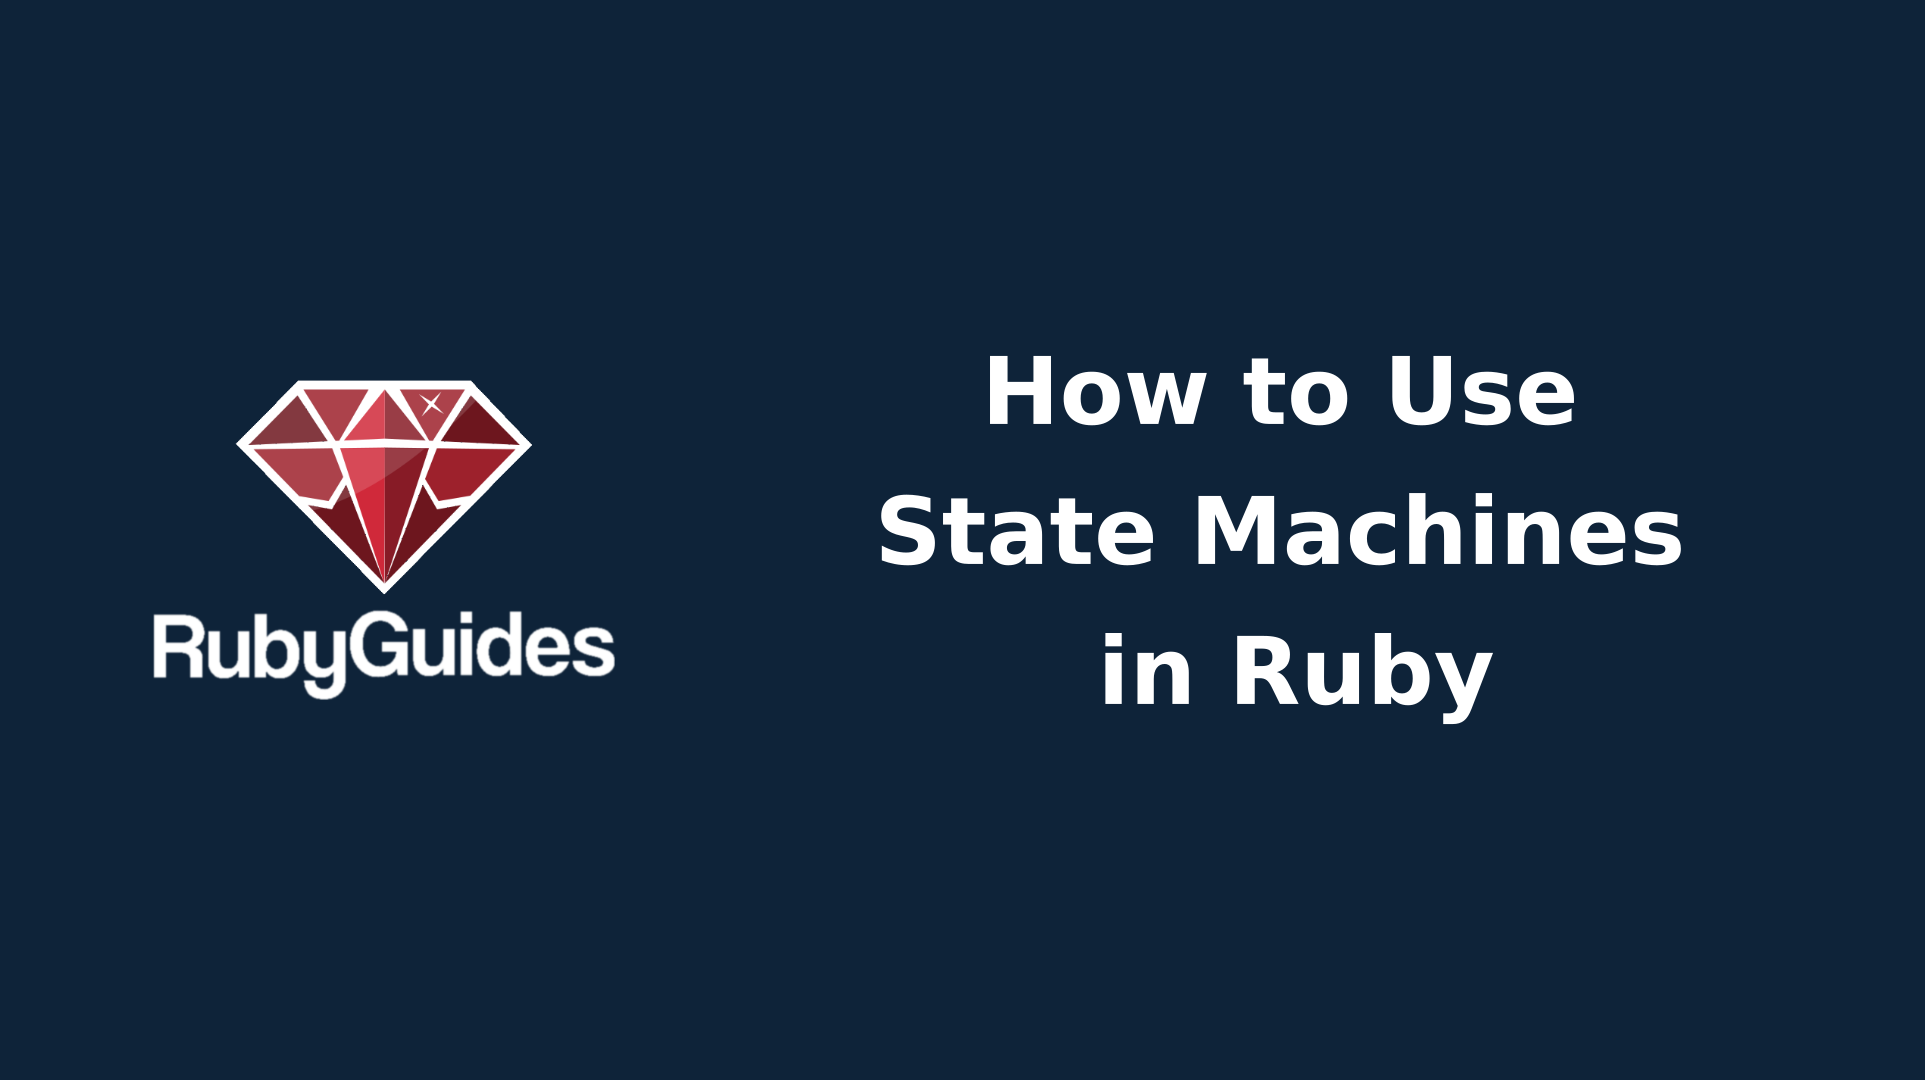 How to Use State Machines in Ruby